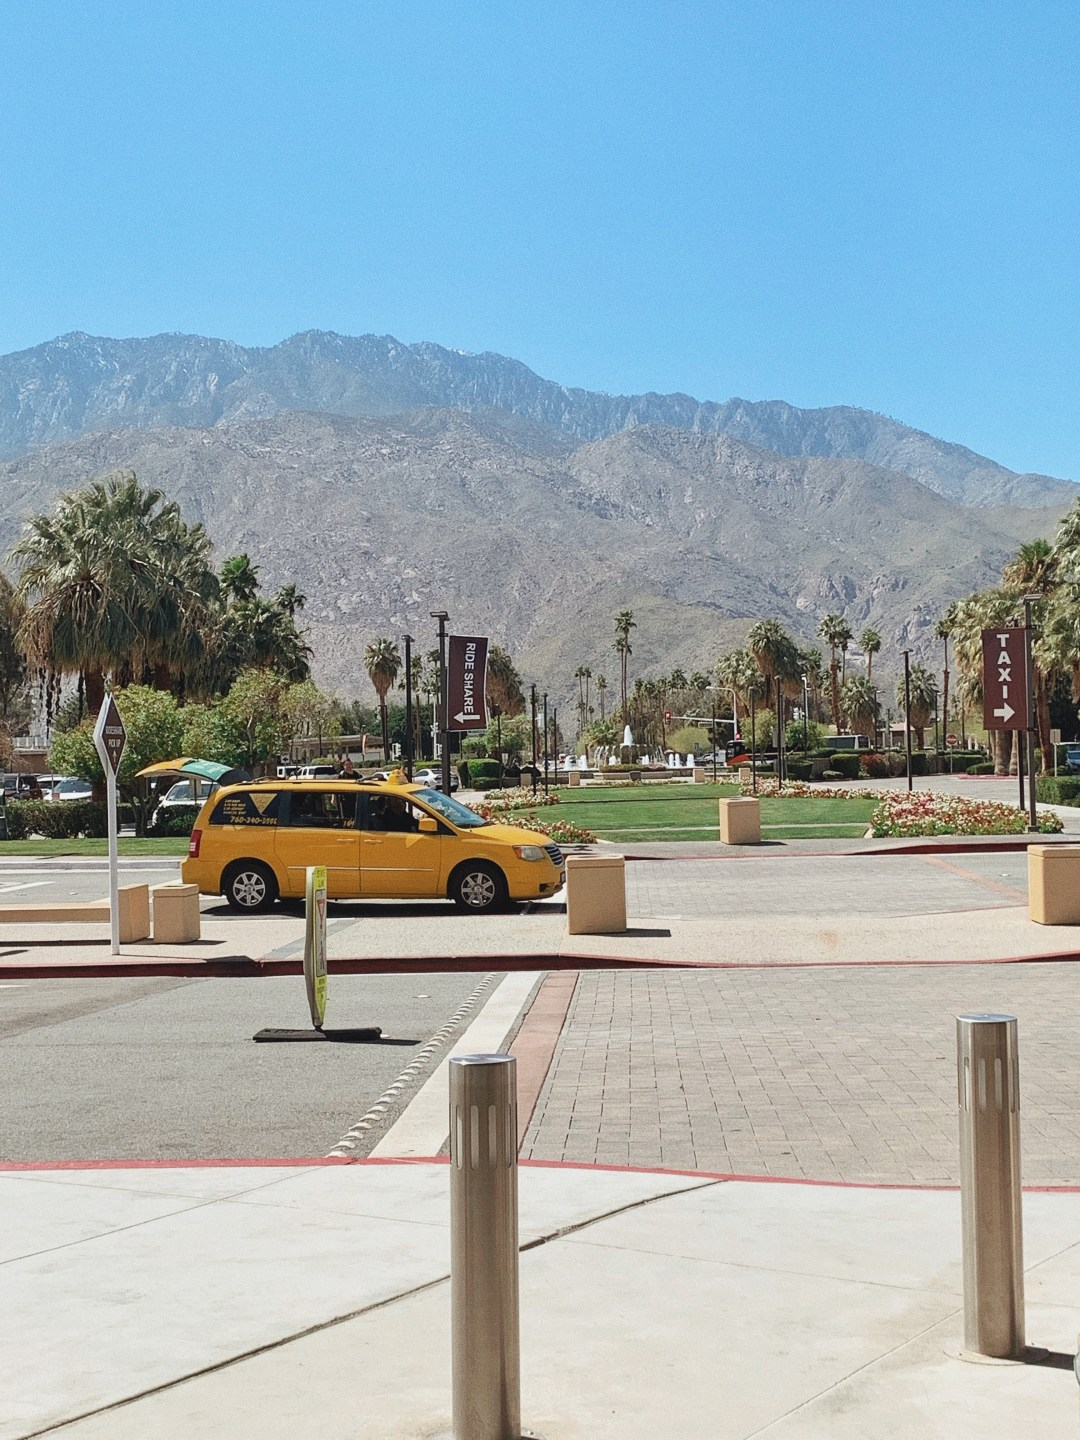 mountain views, places with mountains, Palm Springs, airports, travel blogs